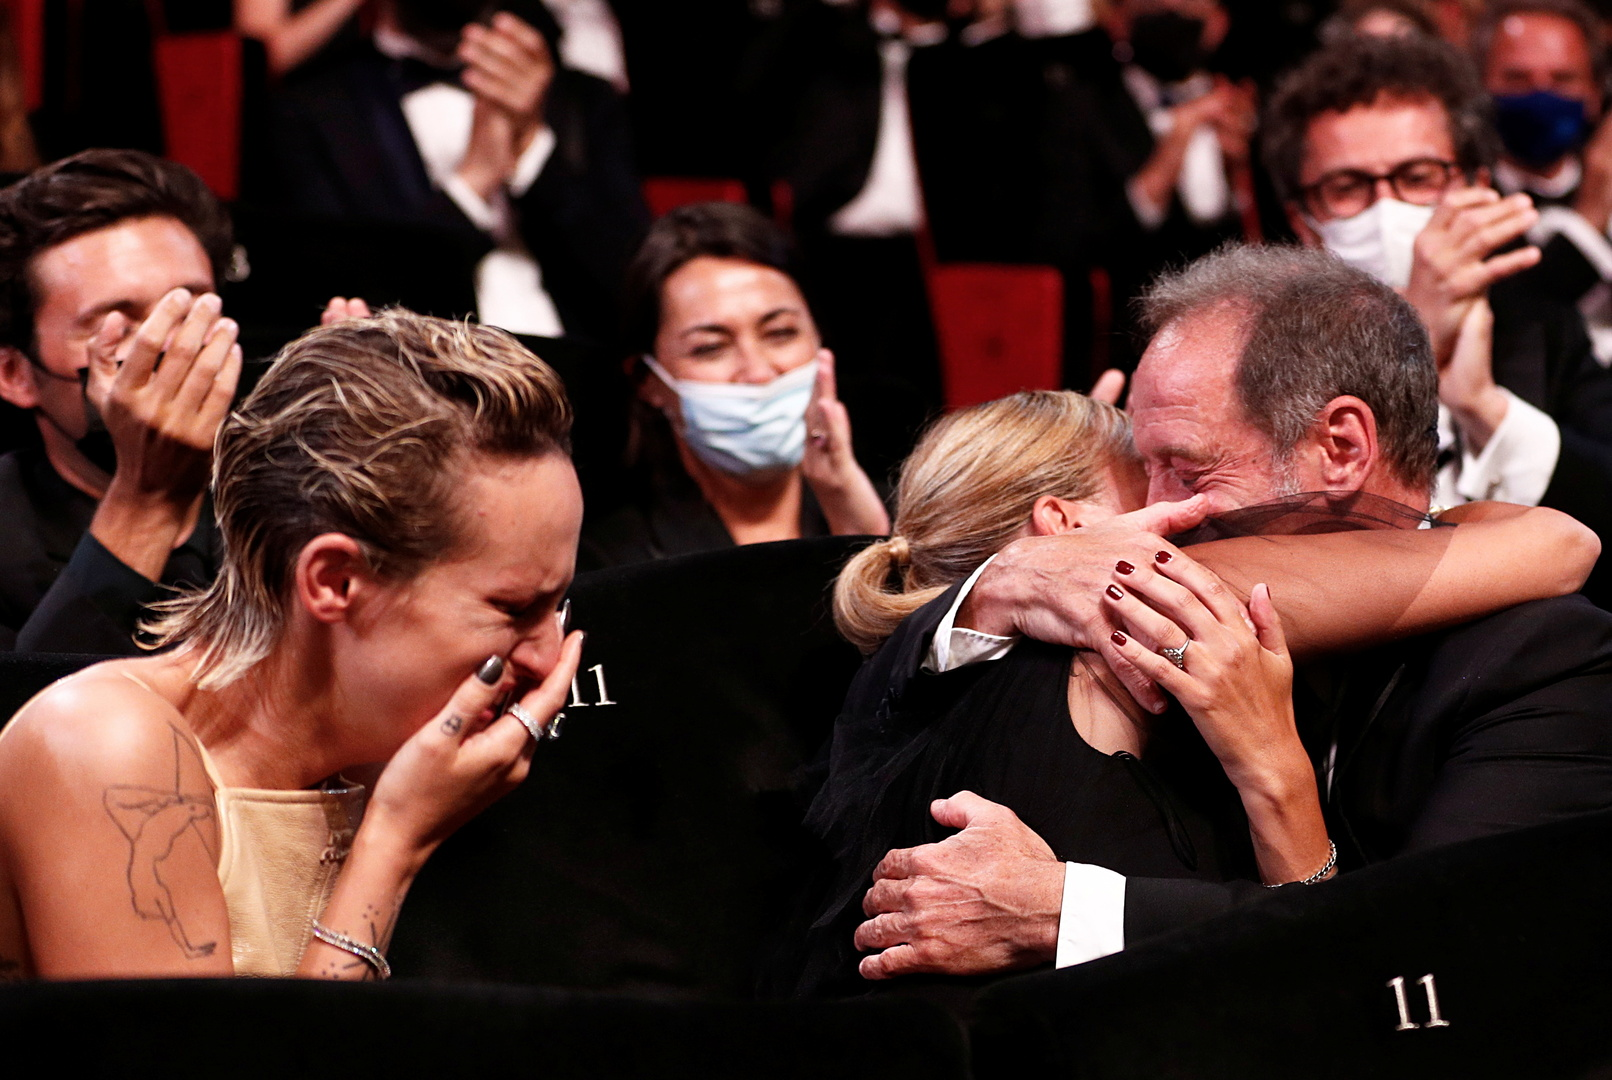 French director wins Palme d'Or at Cannes Film Festival (photos)